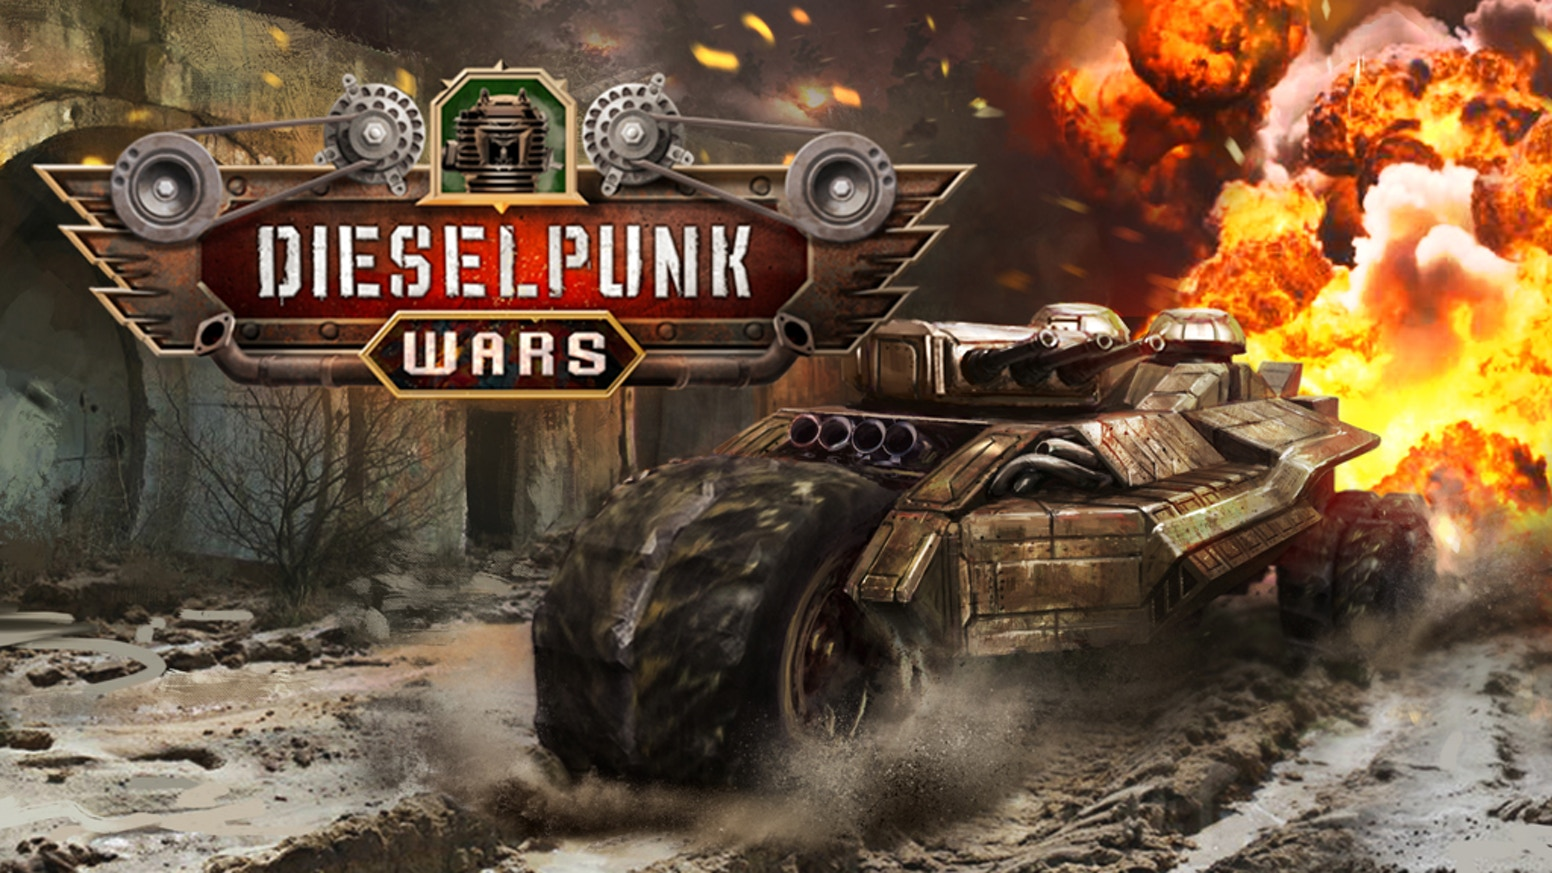 Vehicle building game, focused on combat with advanced physics and  damage simulation. Use over 250 elements to build a war machine of your  dreams. Construct vehicles that ride on the ground, soar through the  skies, or dive underwater.